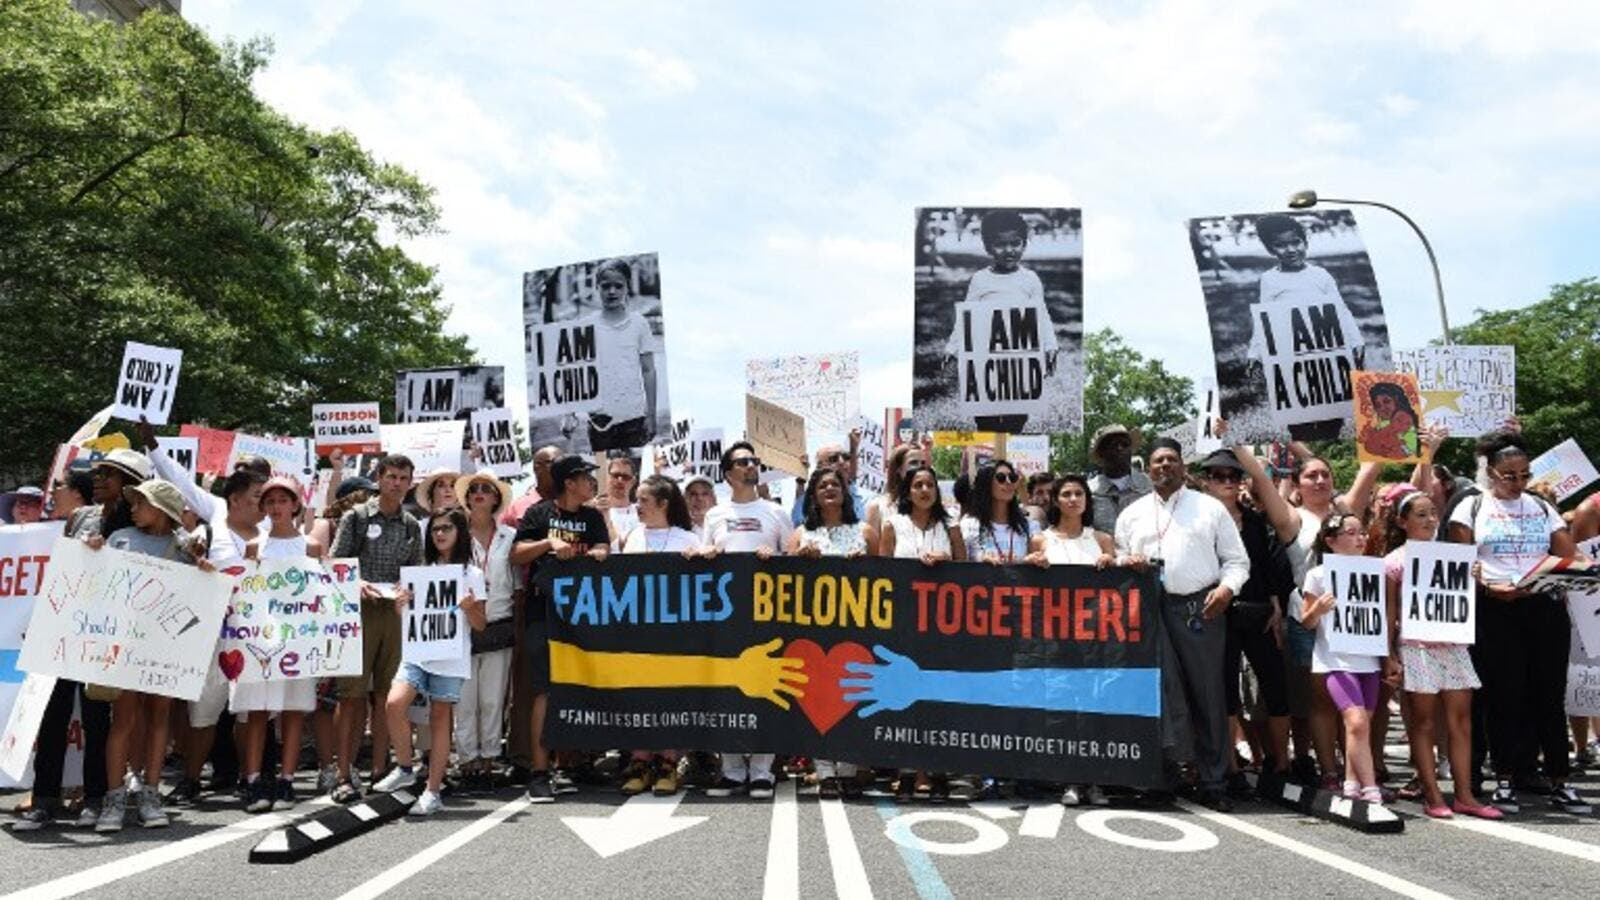 Actor Lin-Manuel Miranda and volunteers march during Families Belong Together Rally In Washington DC Sponsored By MoveOn, National Domestic Workers Alliance, And Hundreds Of Allies on June 30, 2018 in Washington, DC. (AFP/ File Photo)